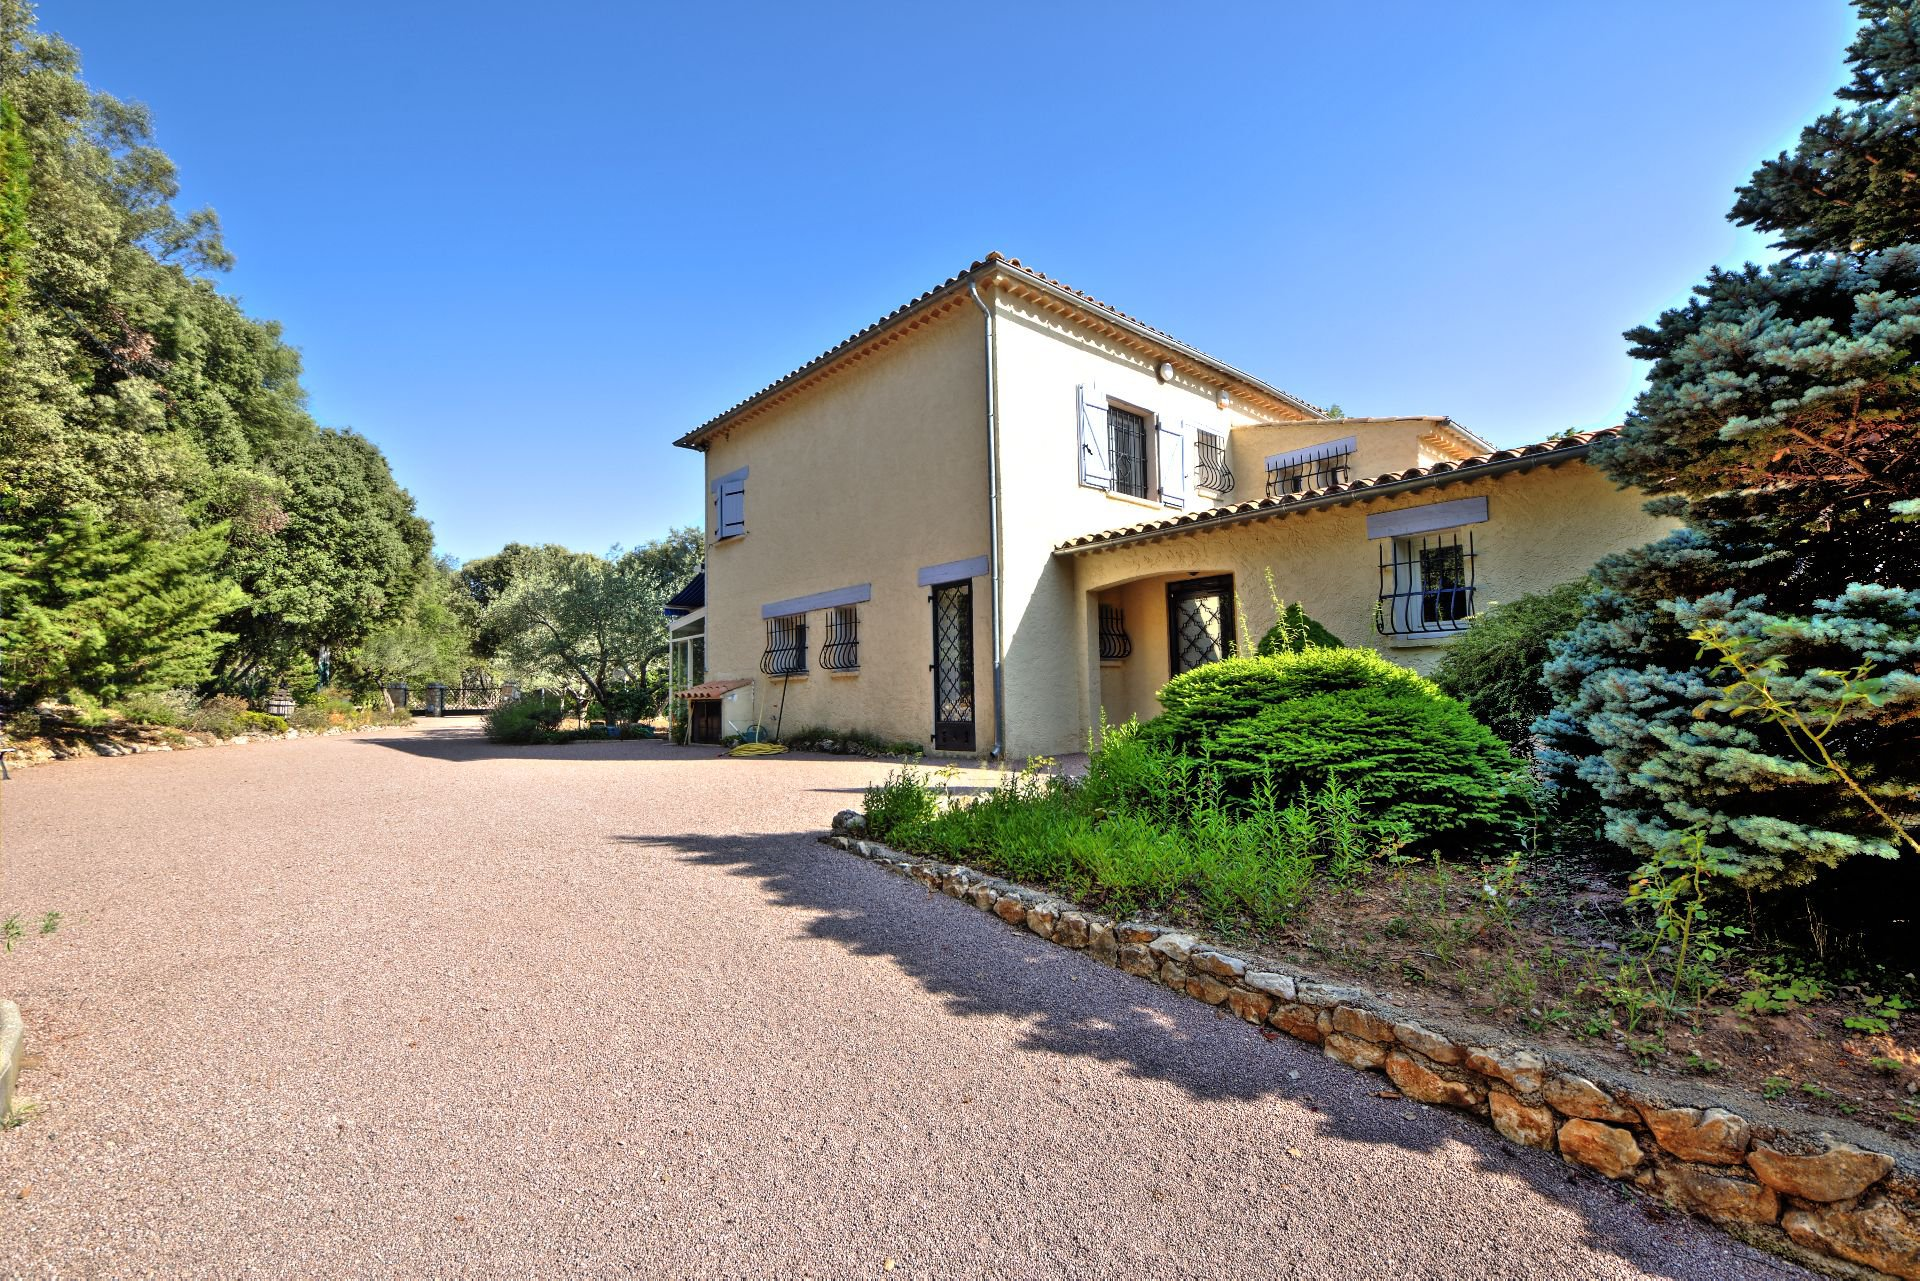 Entrance House 200 m², 4 bedrooms, outbuilding on 8000 m² agricultural area, Ampus, Var, Provence, Paca